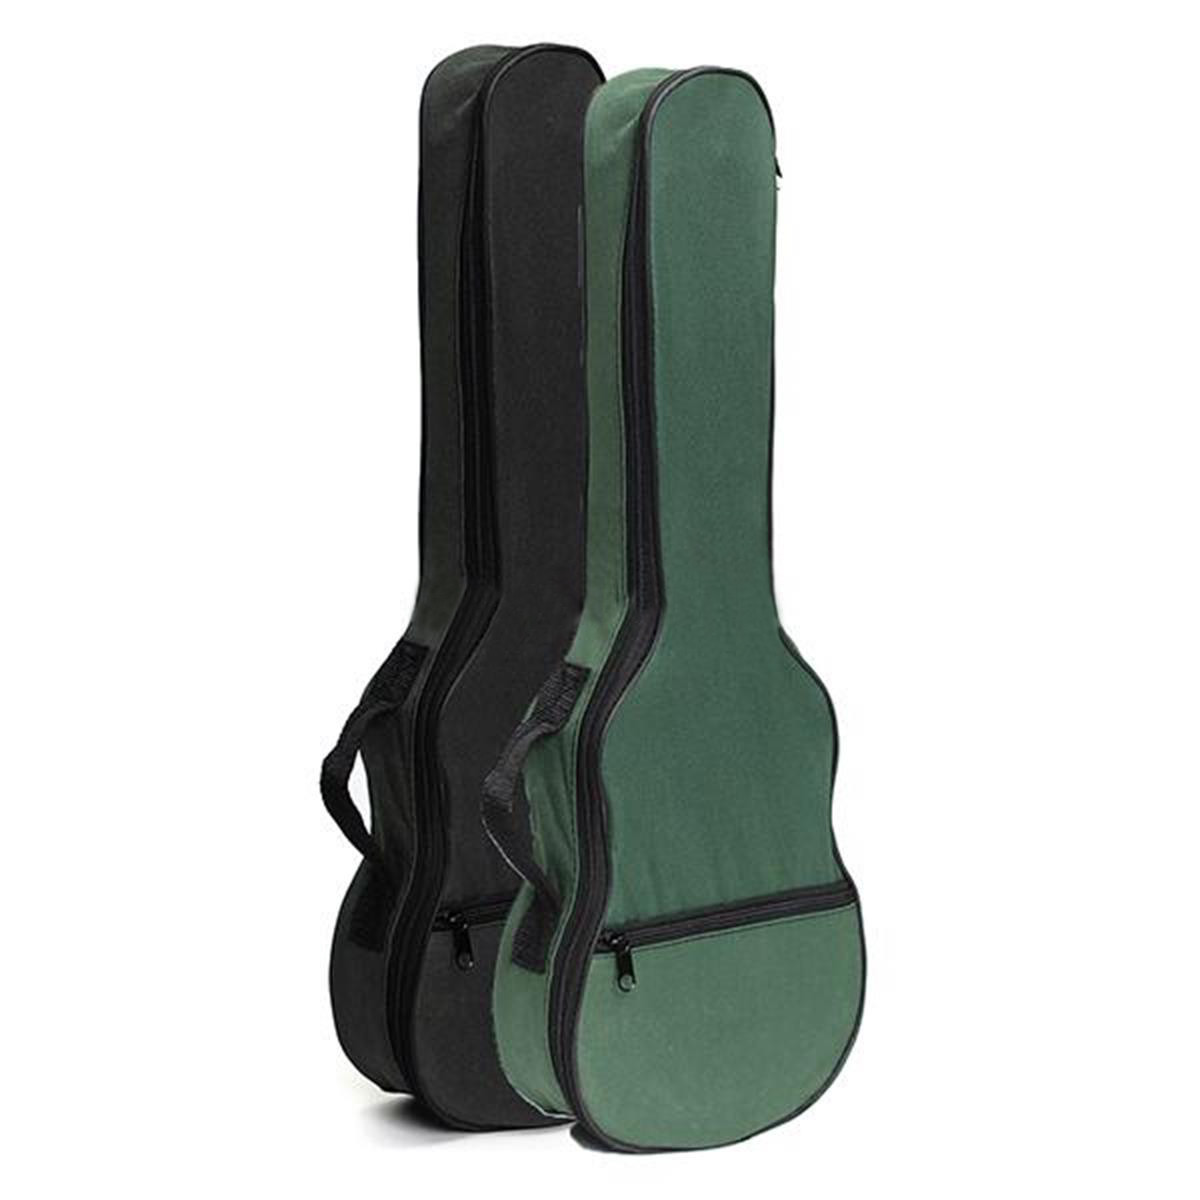 Zebra Soft Black Green Carry Ukulele Case Box Acoustic Guitar Bag With Shoulder Straps For Musical Instruments Parts Accessories travel aluminum blue dji mavic pro storage bag case box suitcase for drone battery remote controller accessories